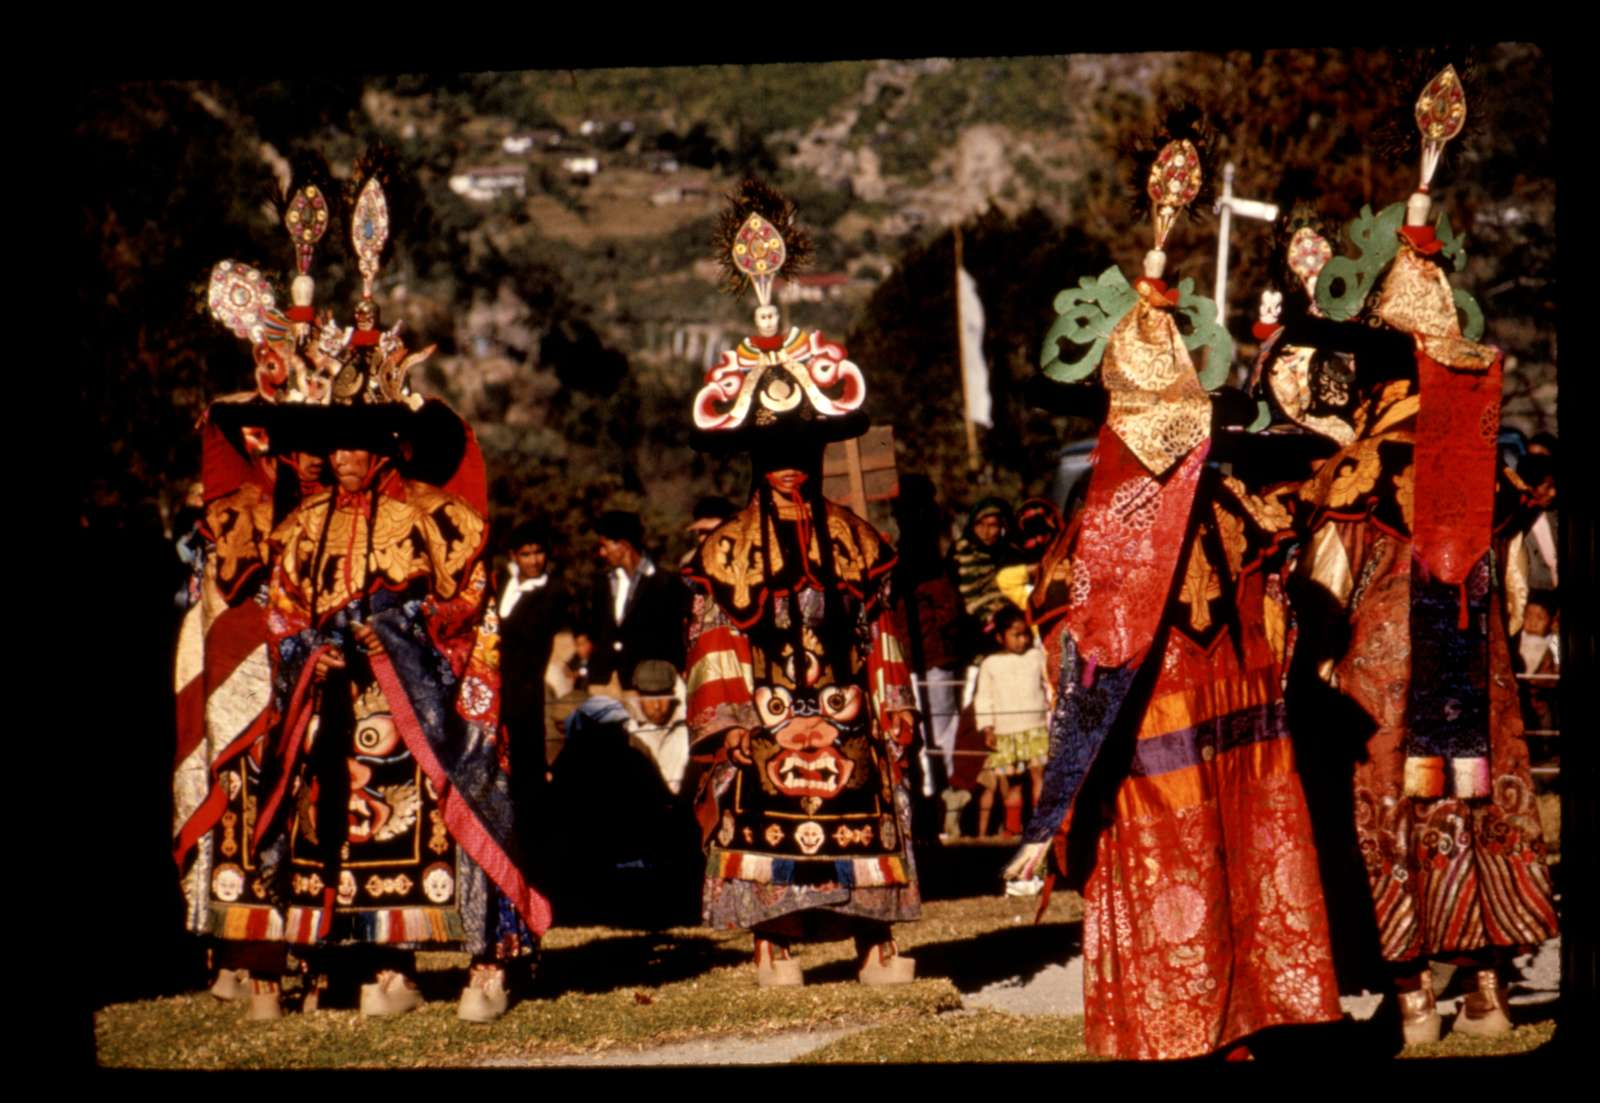 [Performers at New Year's ceremony, Gangtok, Sikkim]